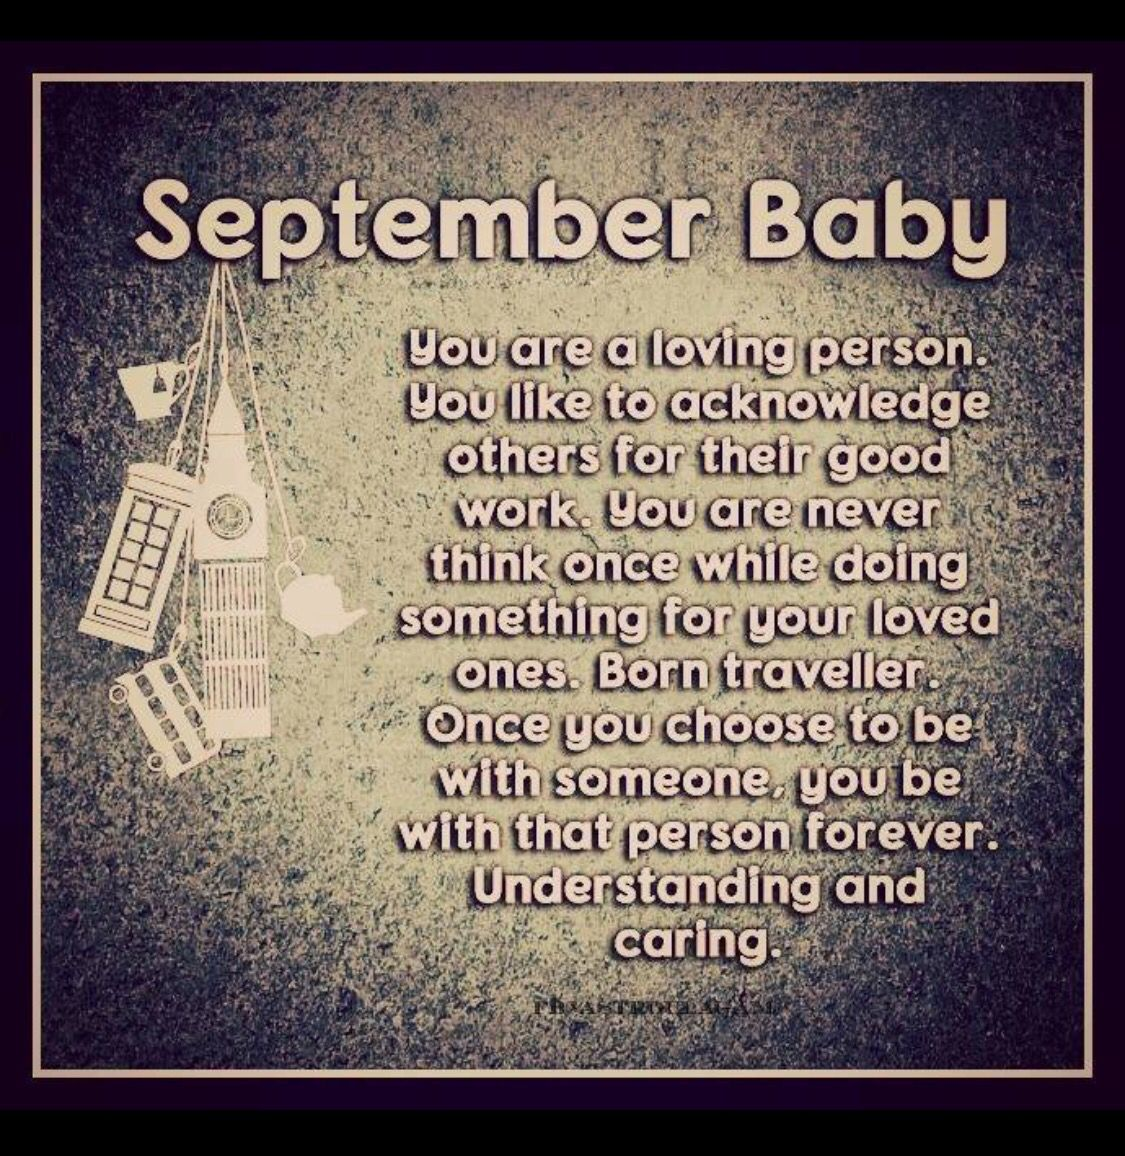 September Baby Quotes and Sayings